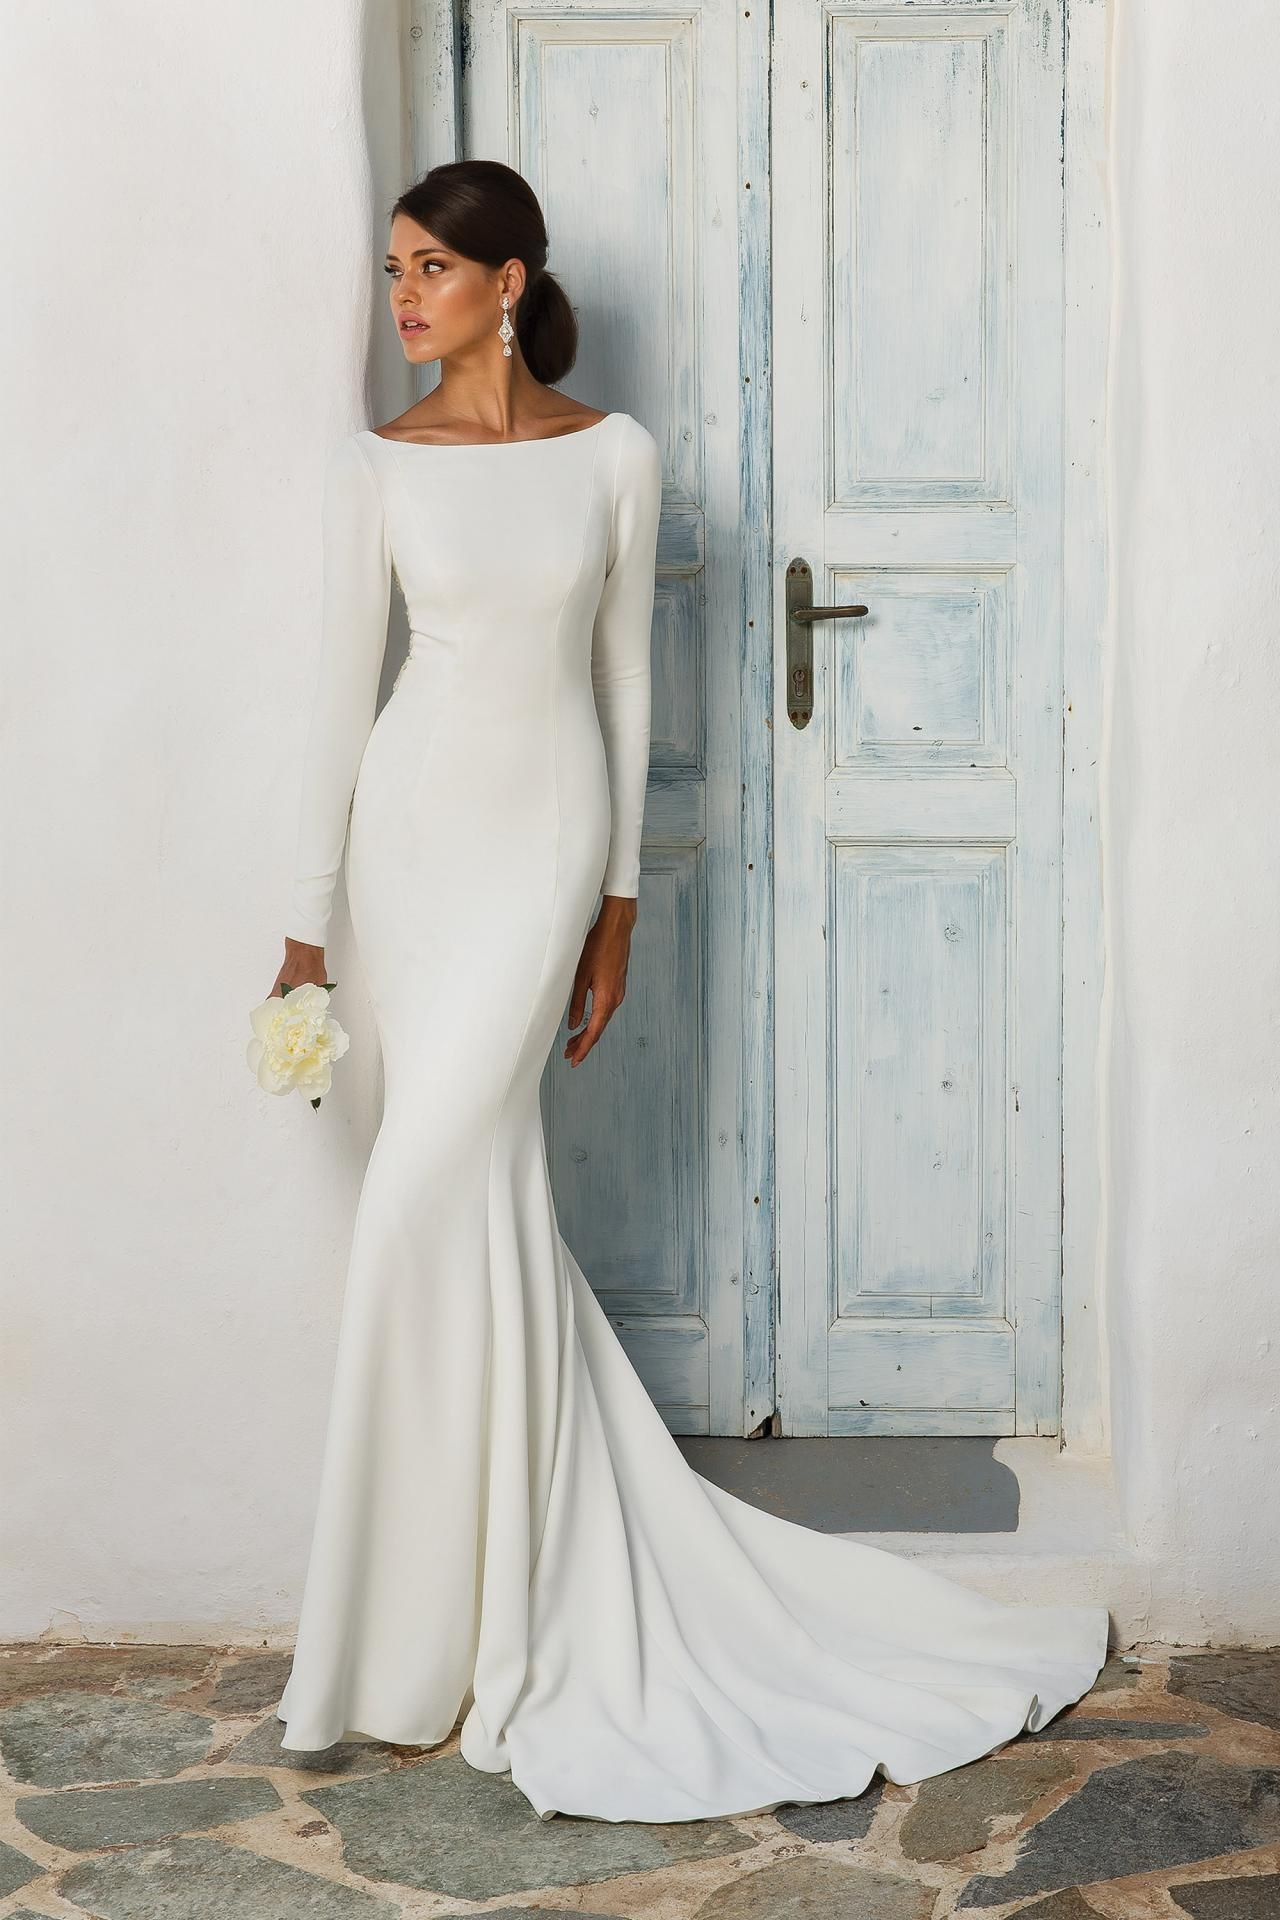 Unique white satin wedding dresslong sleeves bridal dressopen back